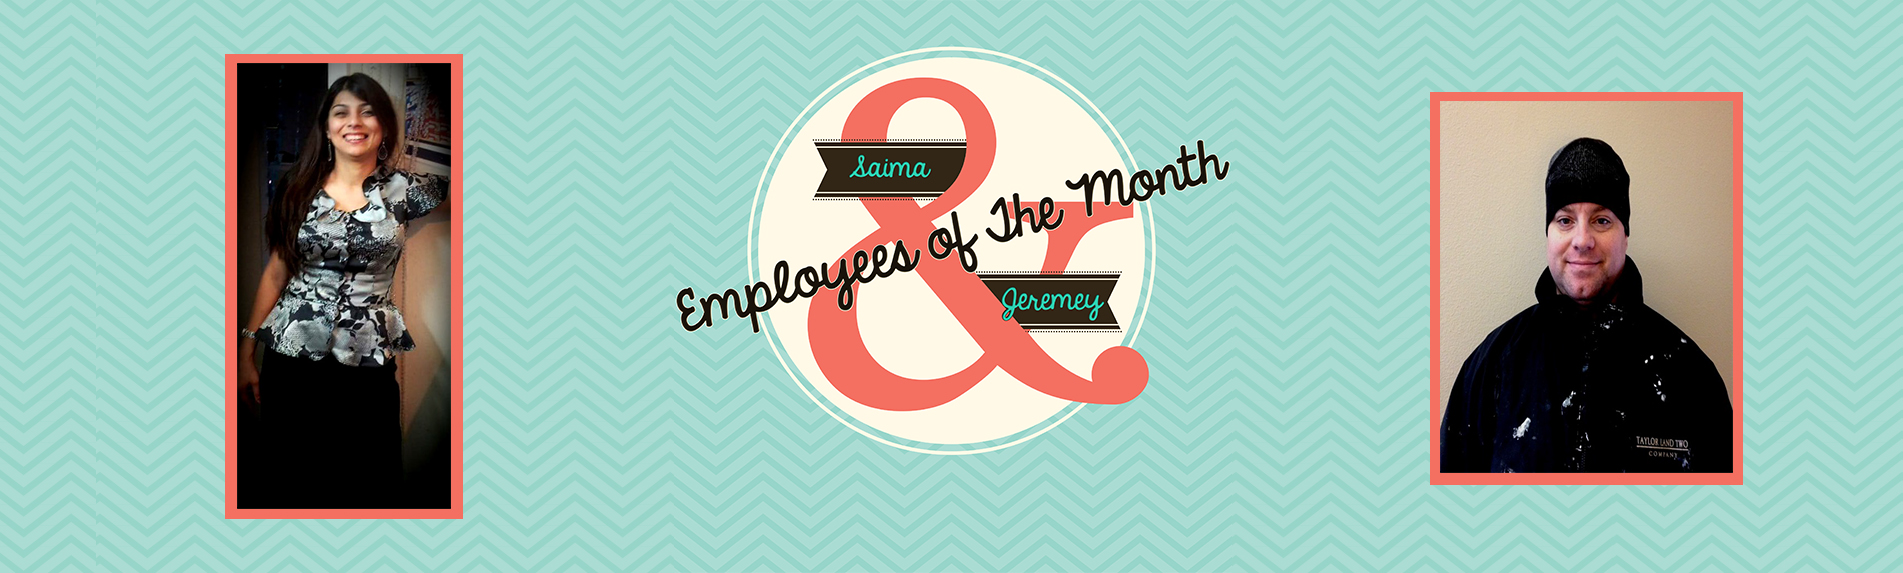 Employees of The Month of May